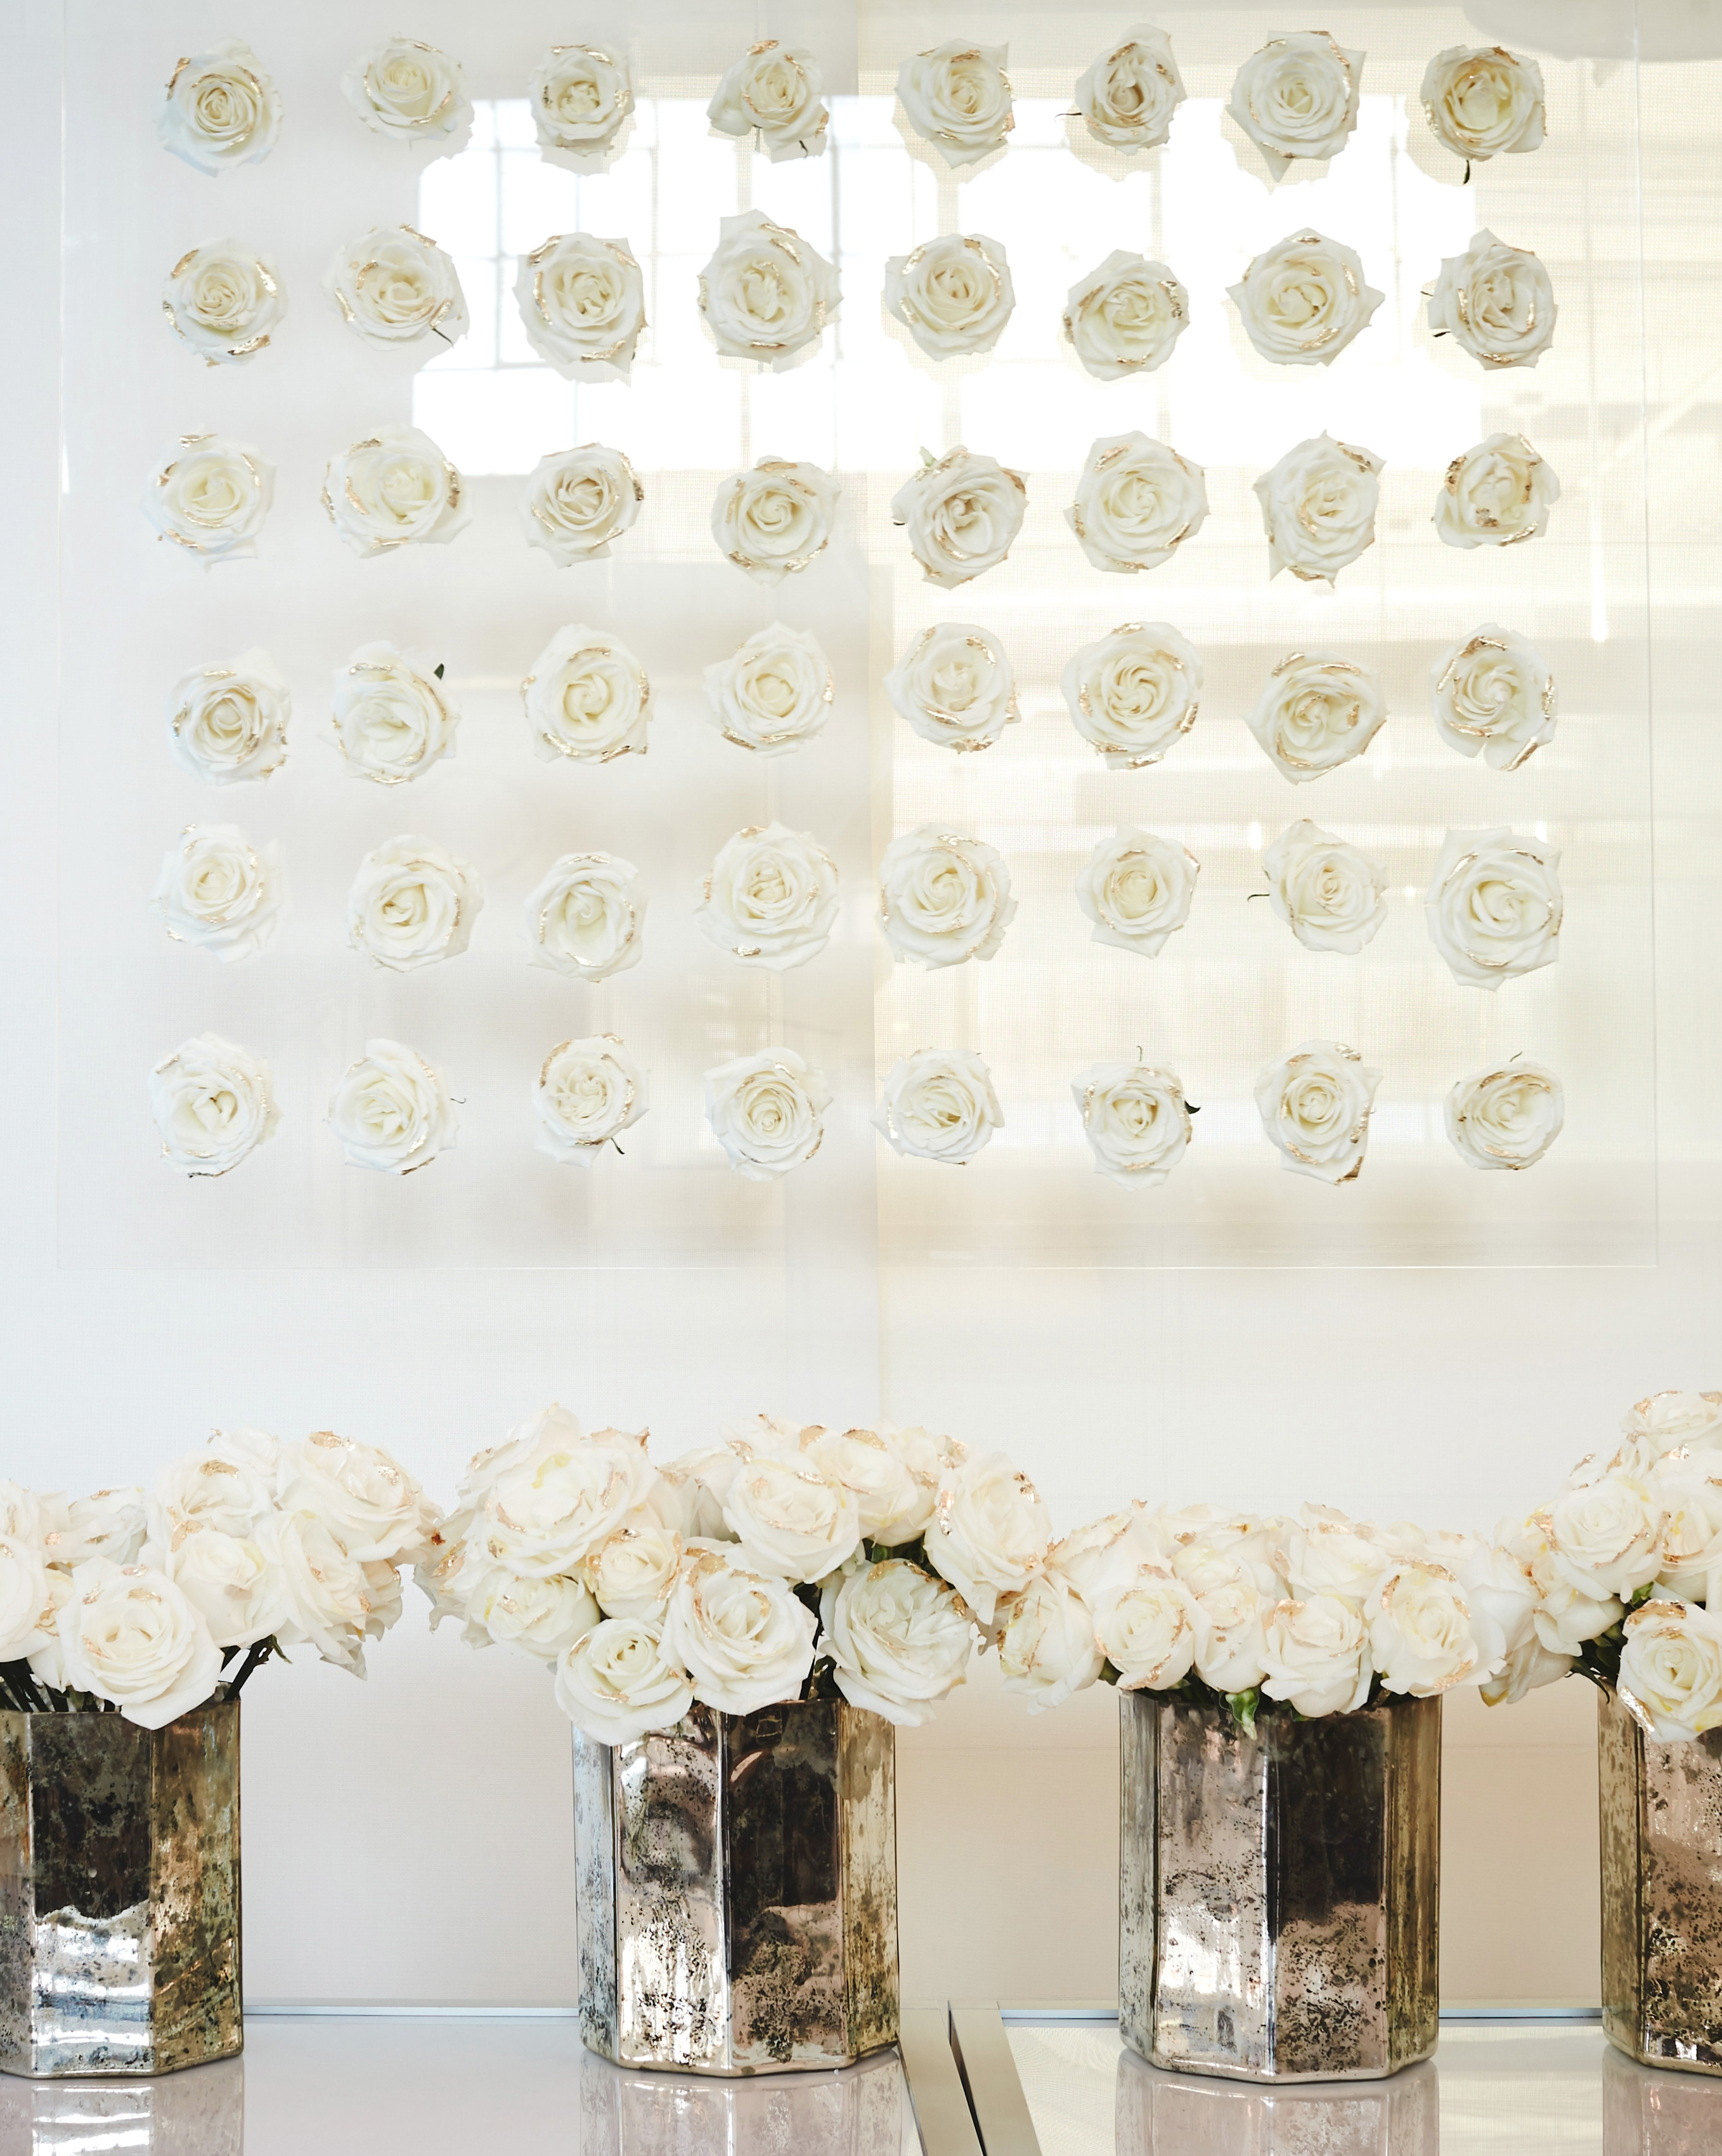 martha-weddings-party-2015-christian-oth-roses-151012-0193-1015.jpg